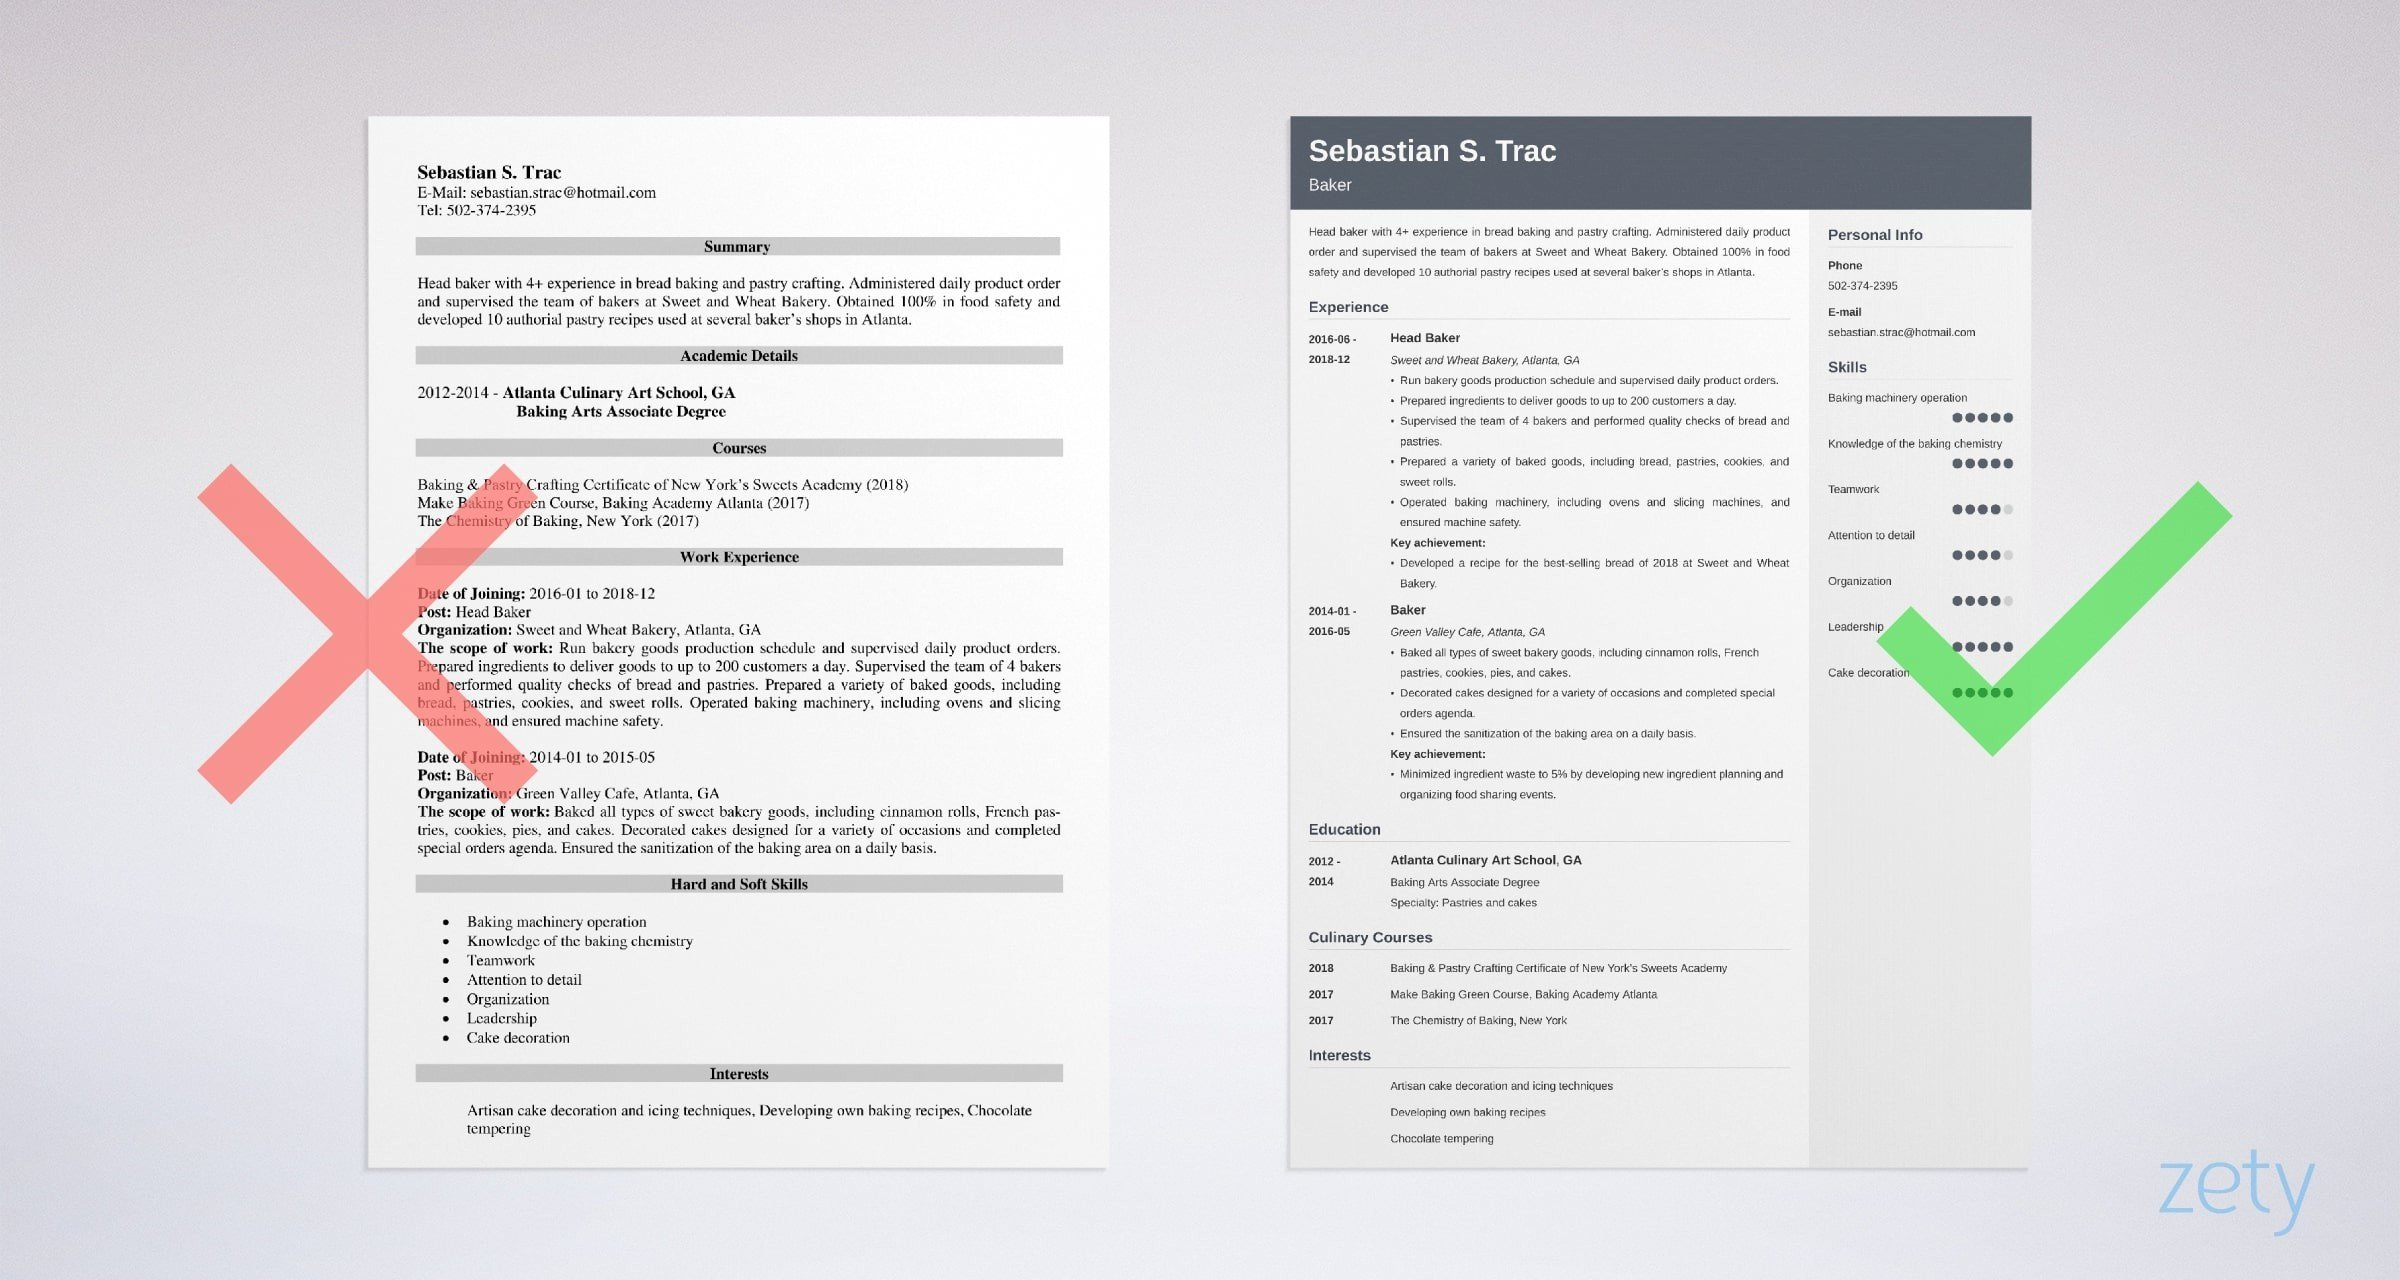 Baker Resume Sample Writing Guide20 Tips